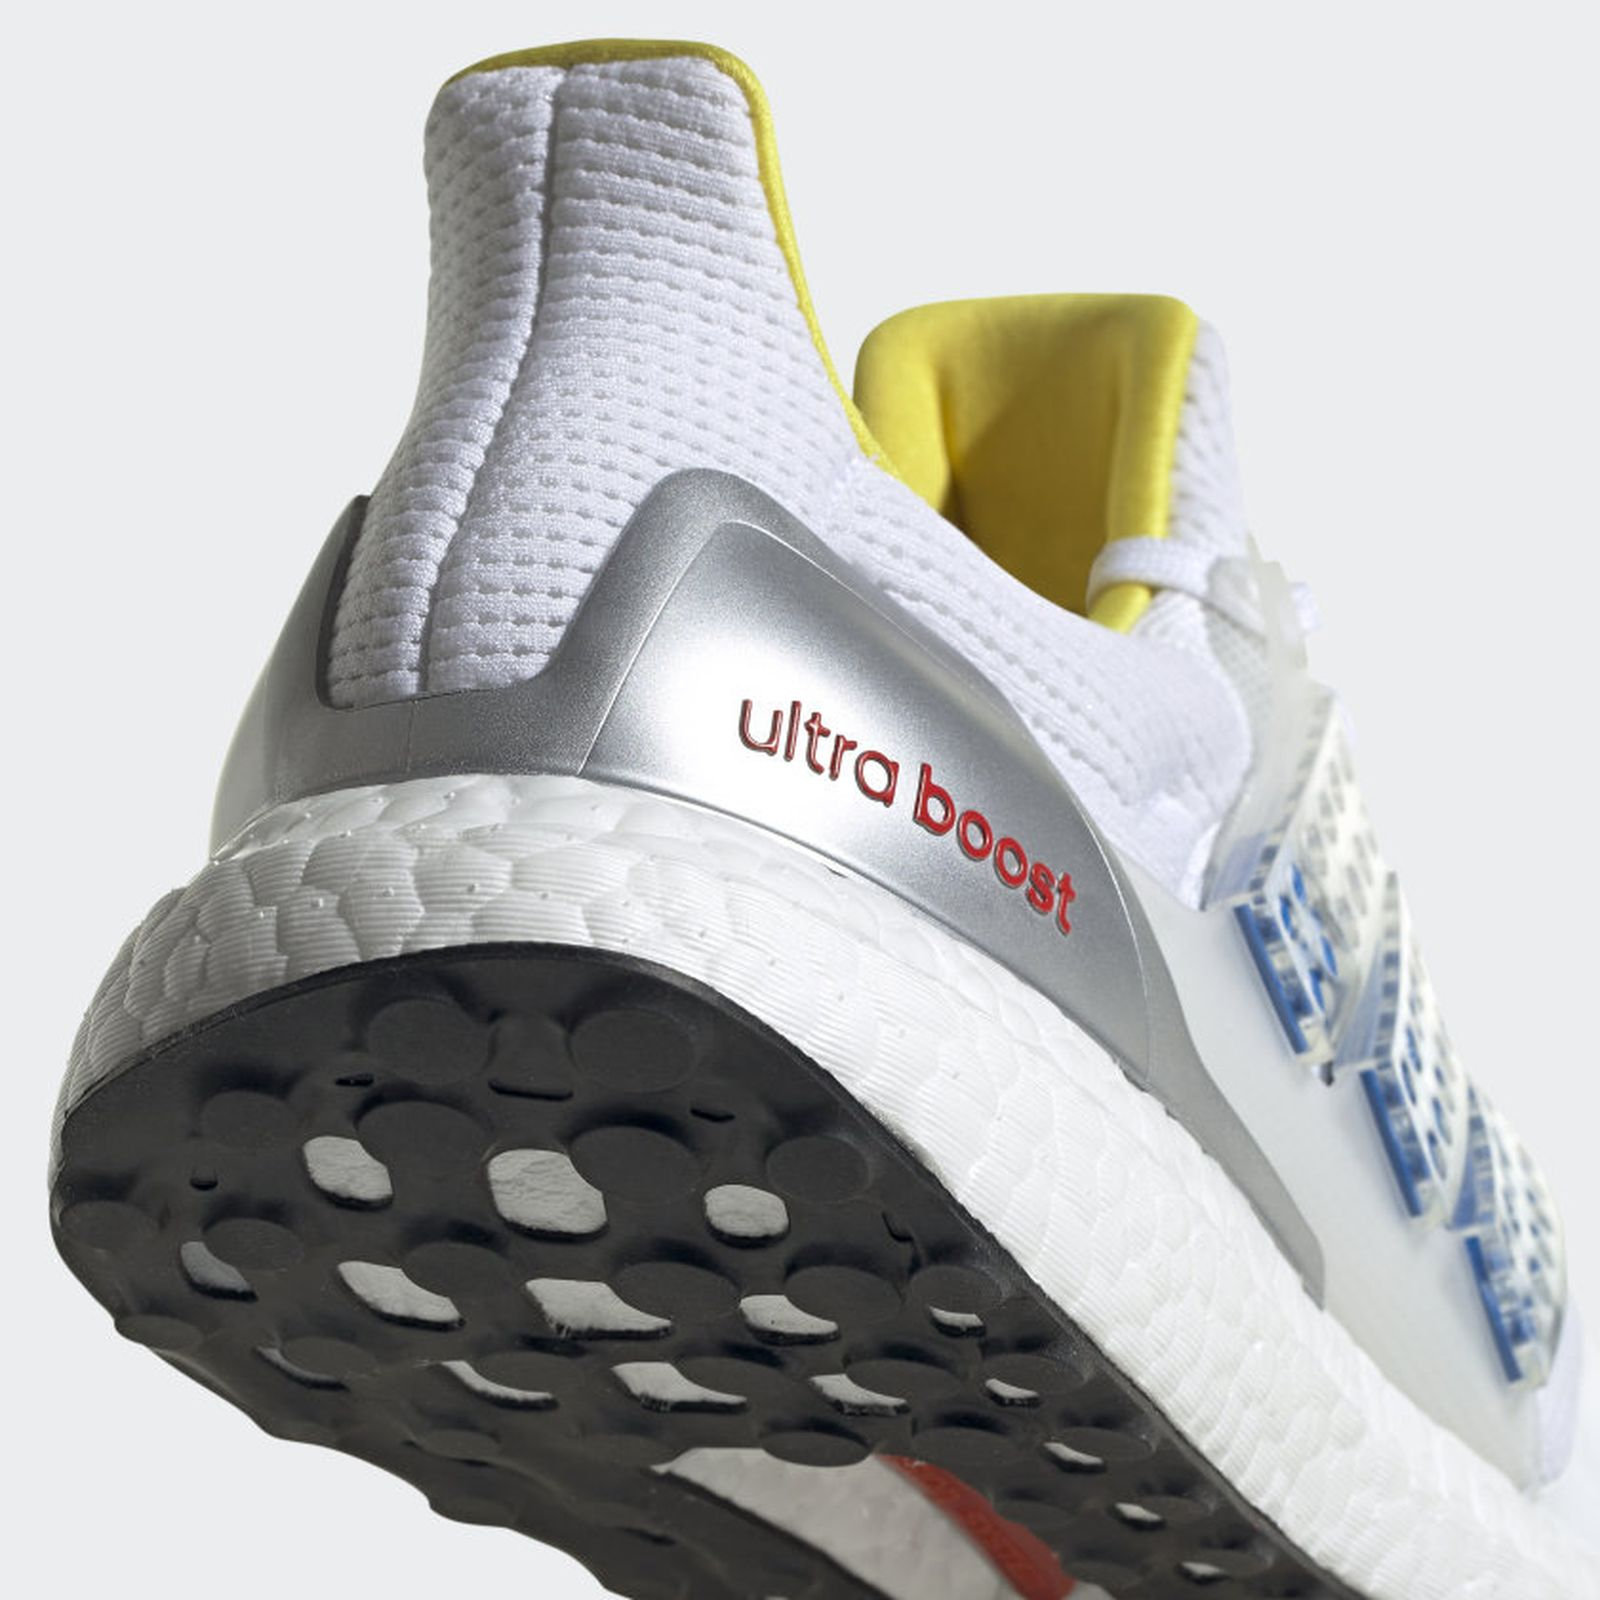 lego-adidas-ultraboost-dna-release-date-price-09